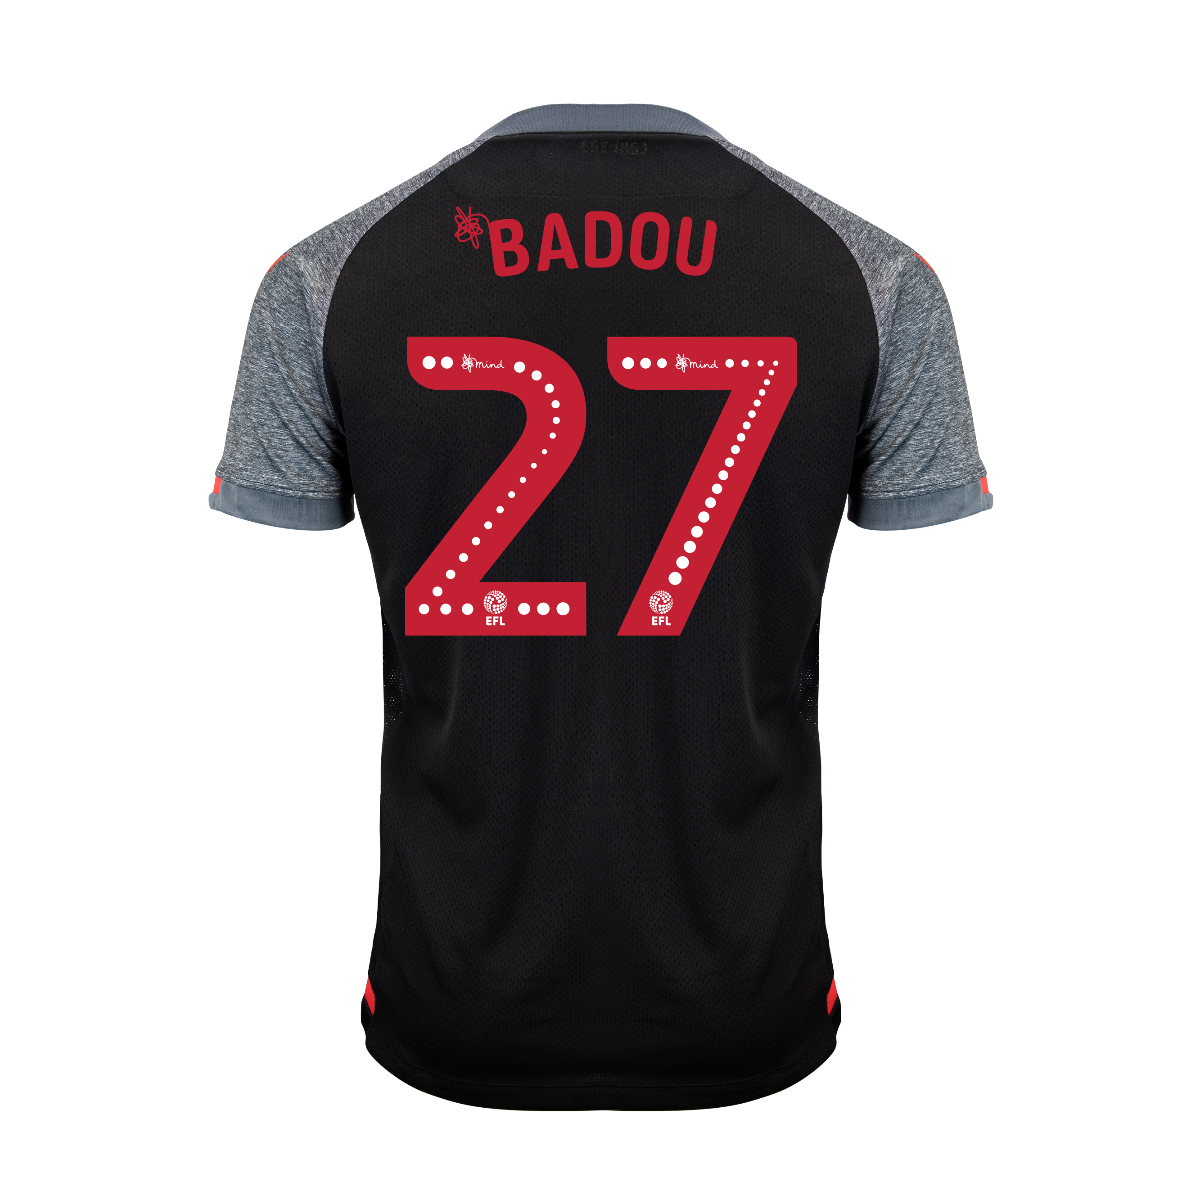 2019/20 Ladies Away Shirt - Badou